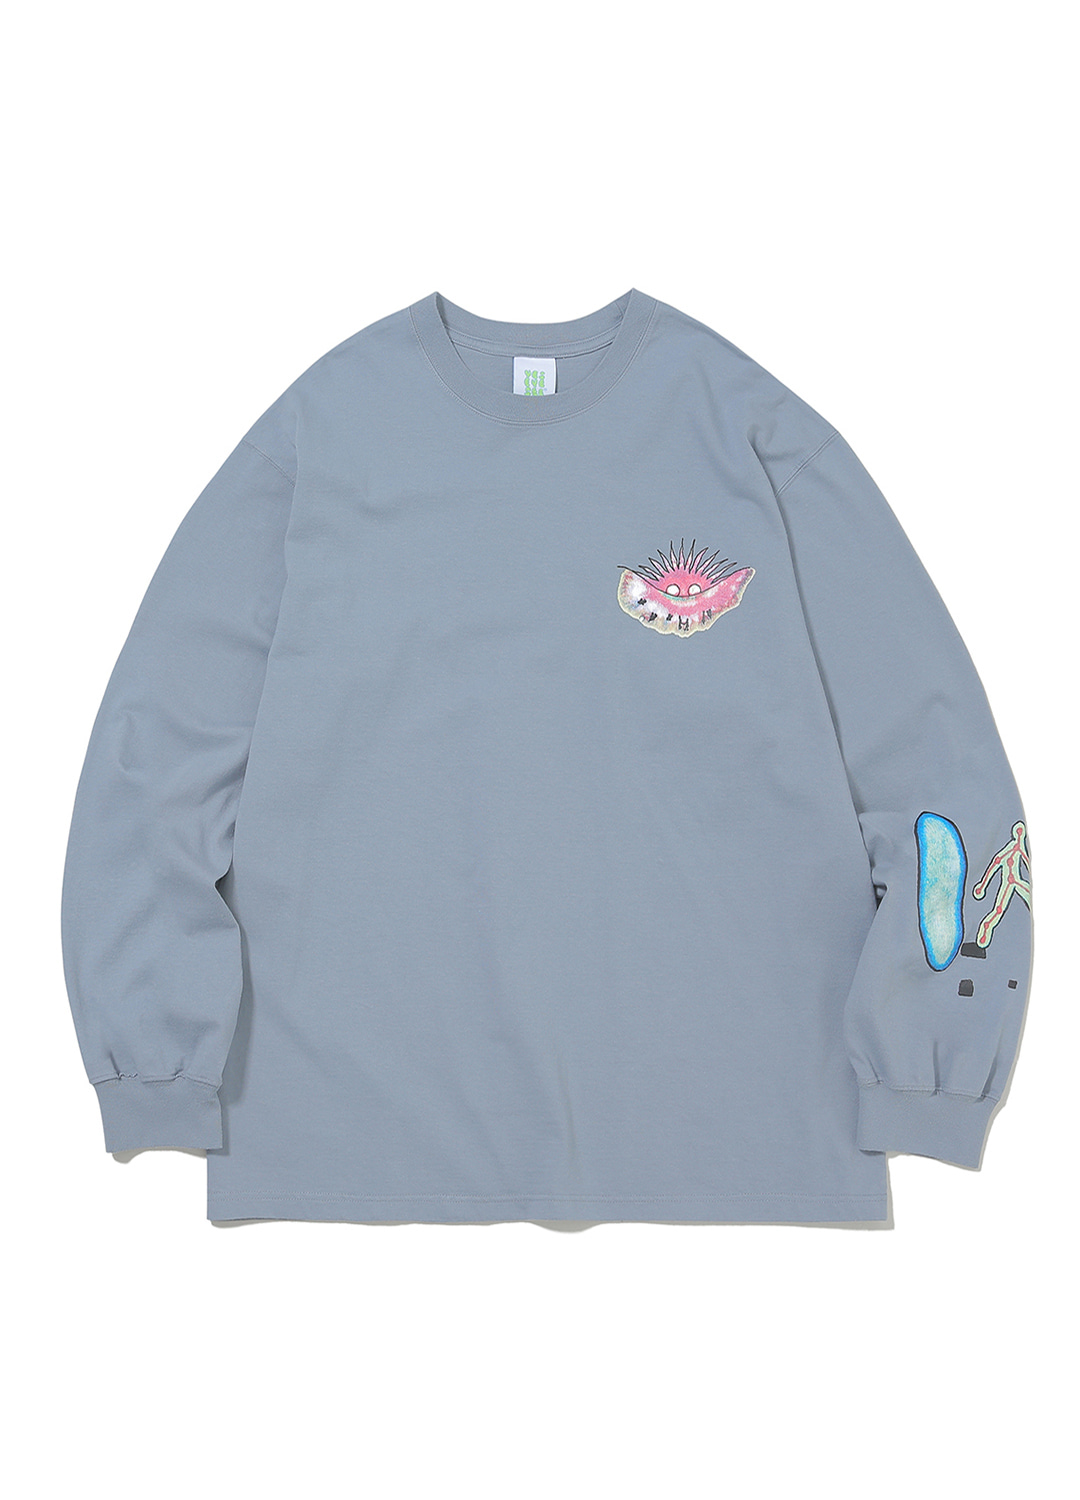 Juwonman Long Sleeve Sky Blue